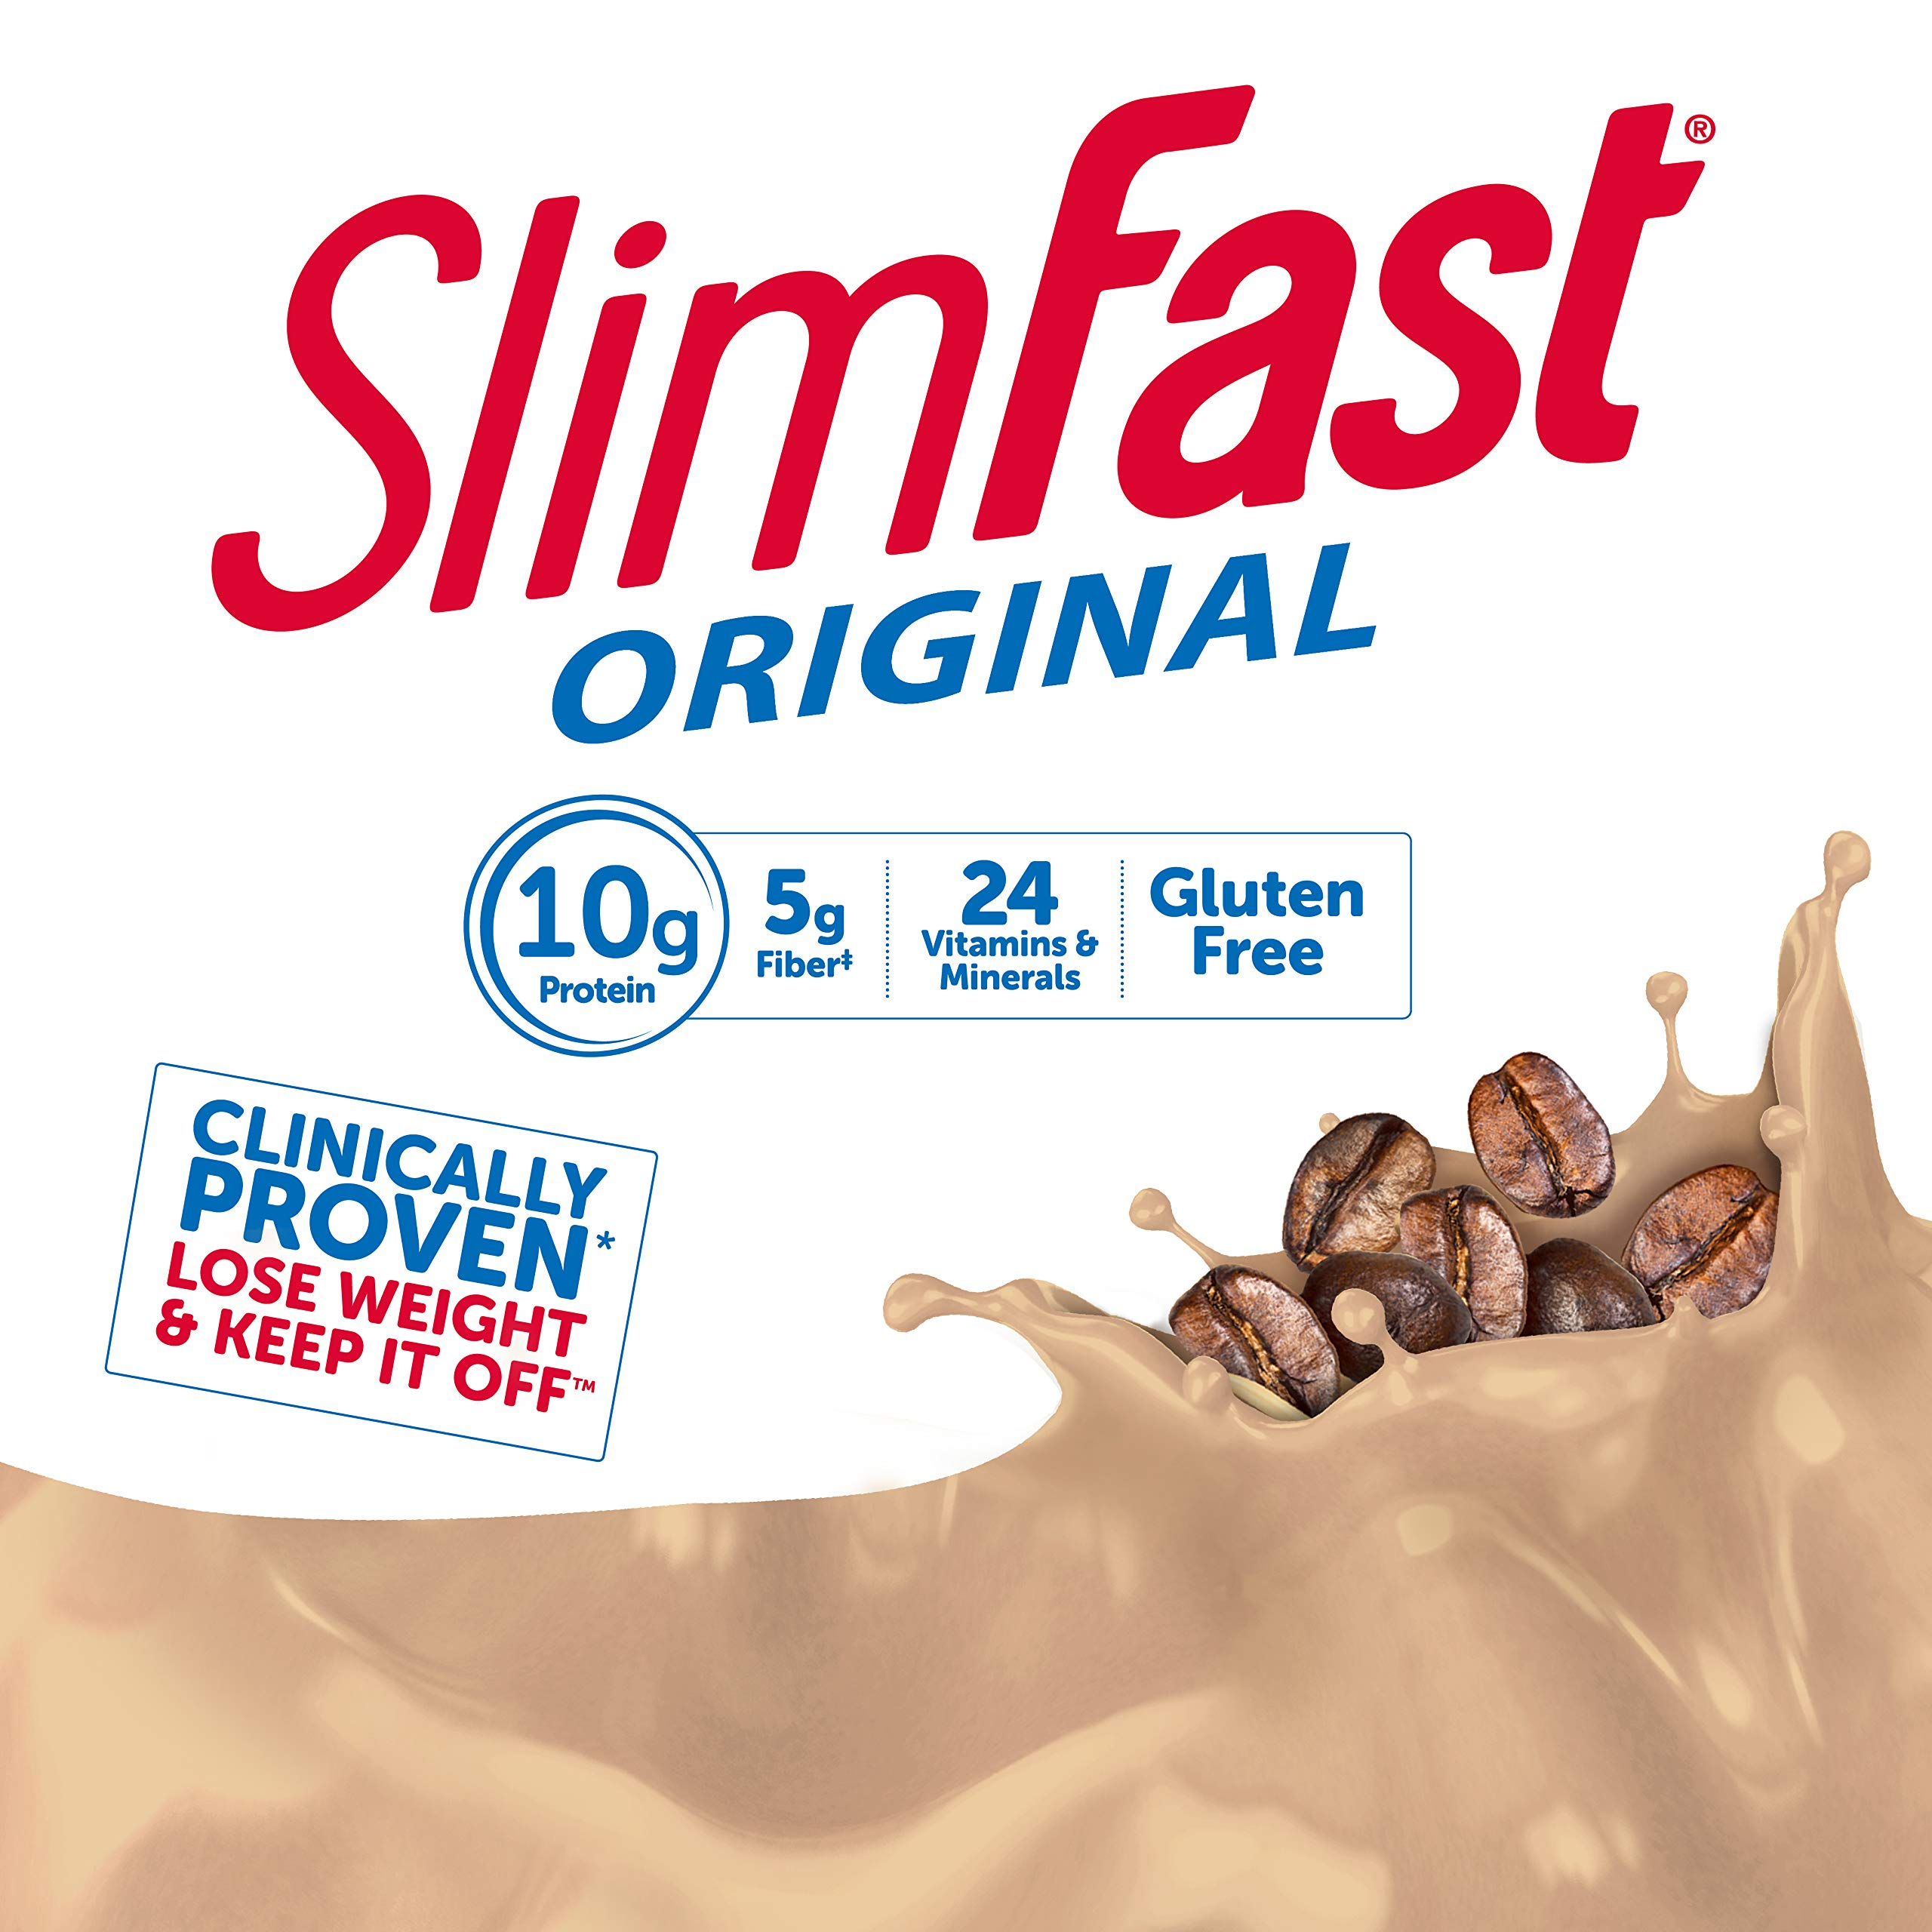 SlimFast Original Cappuccino Delight Shake - Ready to Drink Weight Loss Meal Replacement - 10g of protein - 11 fl. oz. Bottle - 8 Count (Pack Of 3) by SlimFast (Image #8)